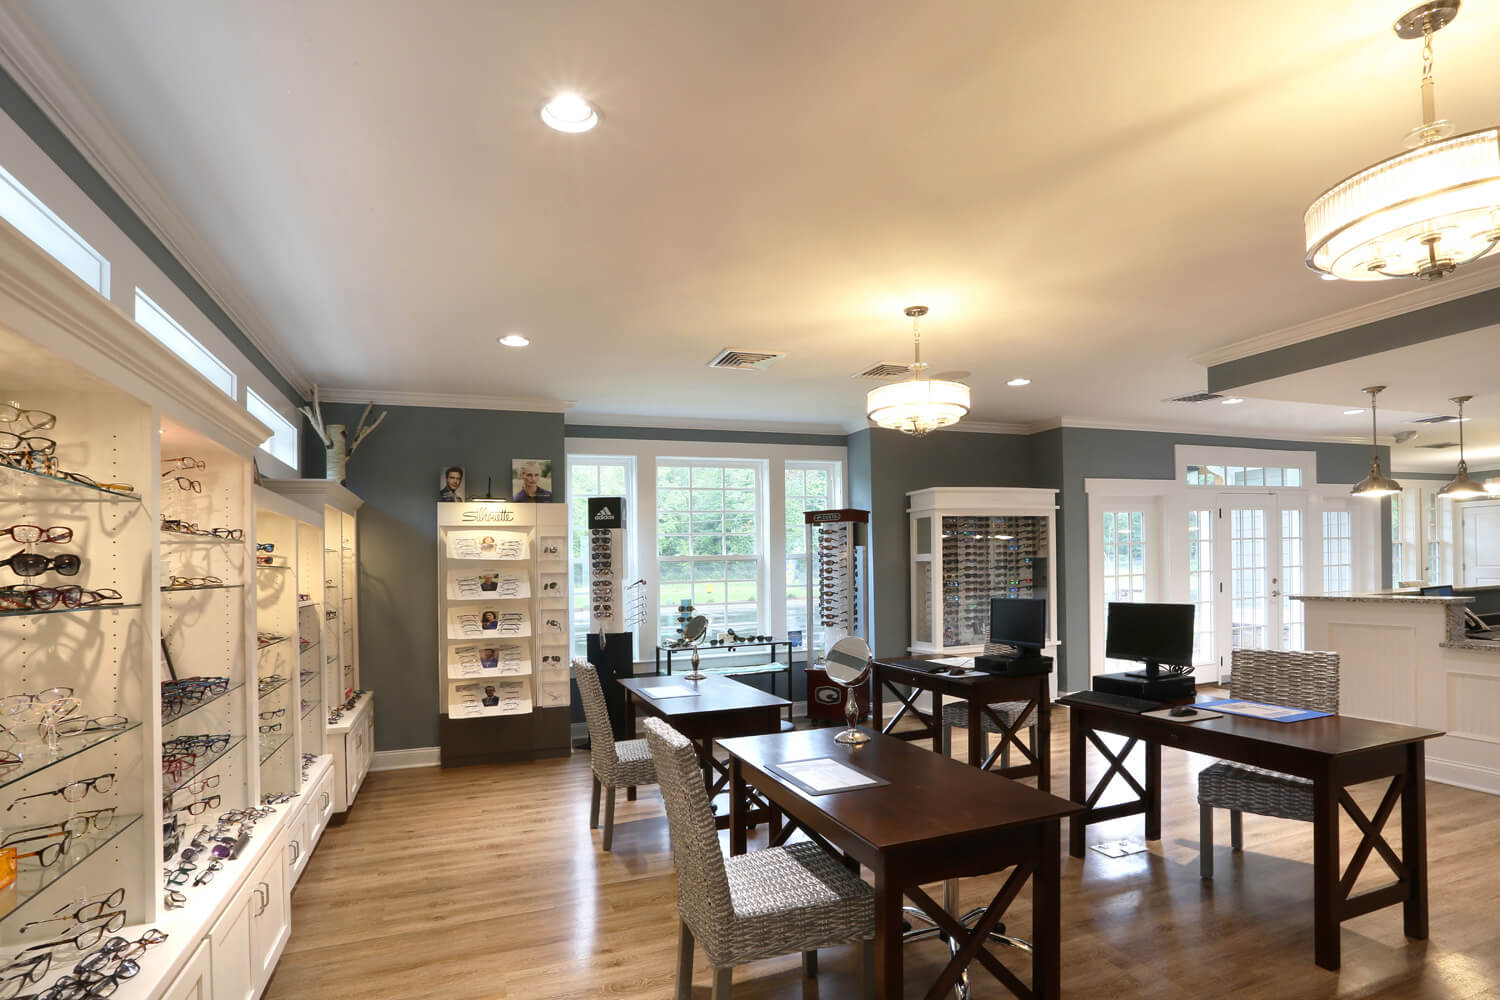 Pike Road Family Eyecare Designed by Foshee Architecture – Eyeglass Fitting Tables